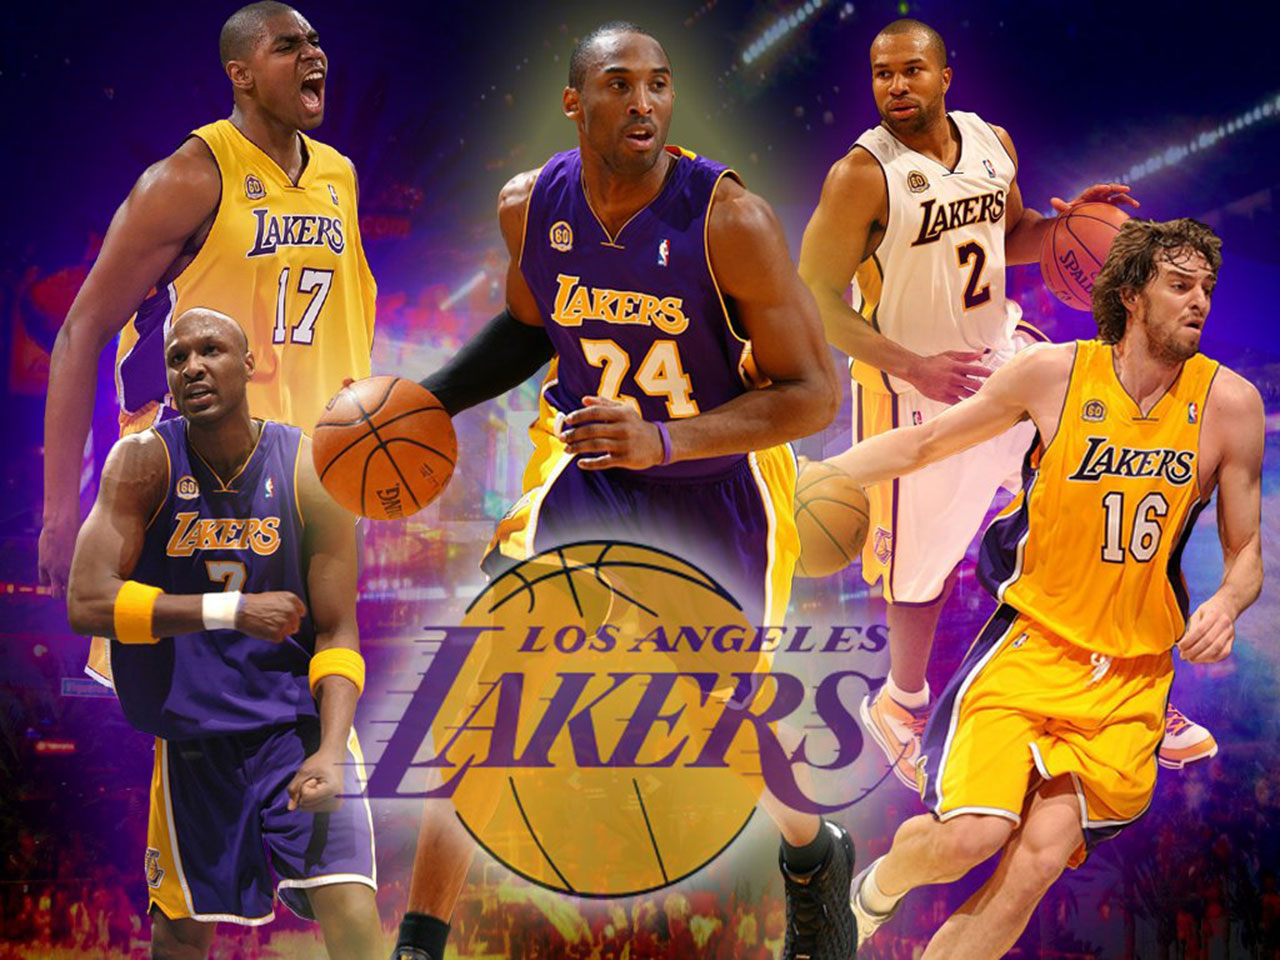 image of the 2014 lakers